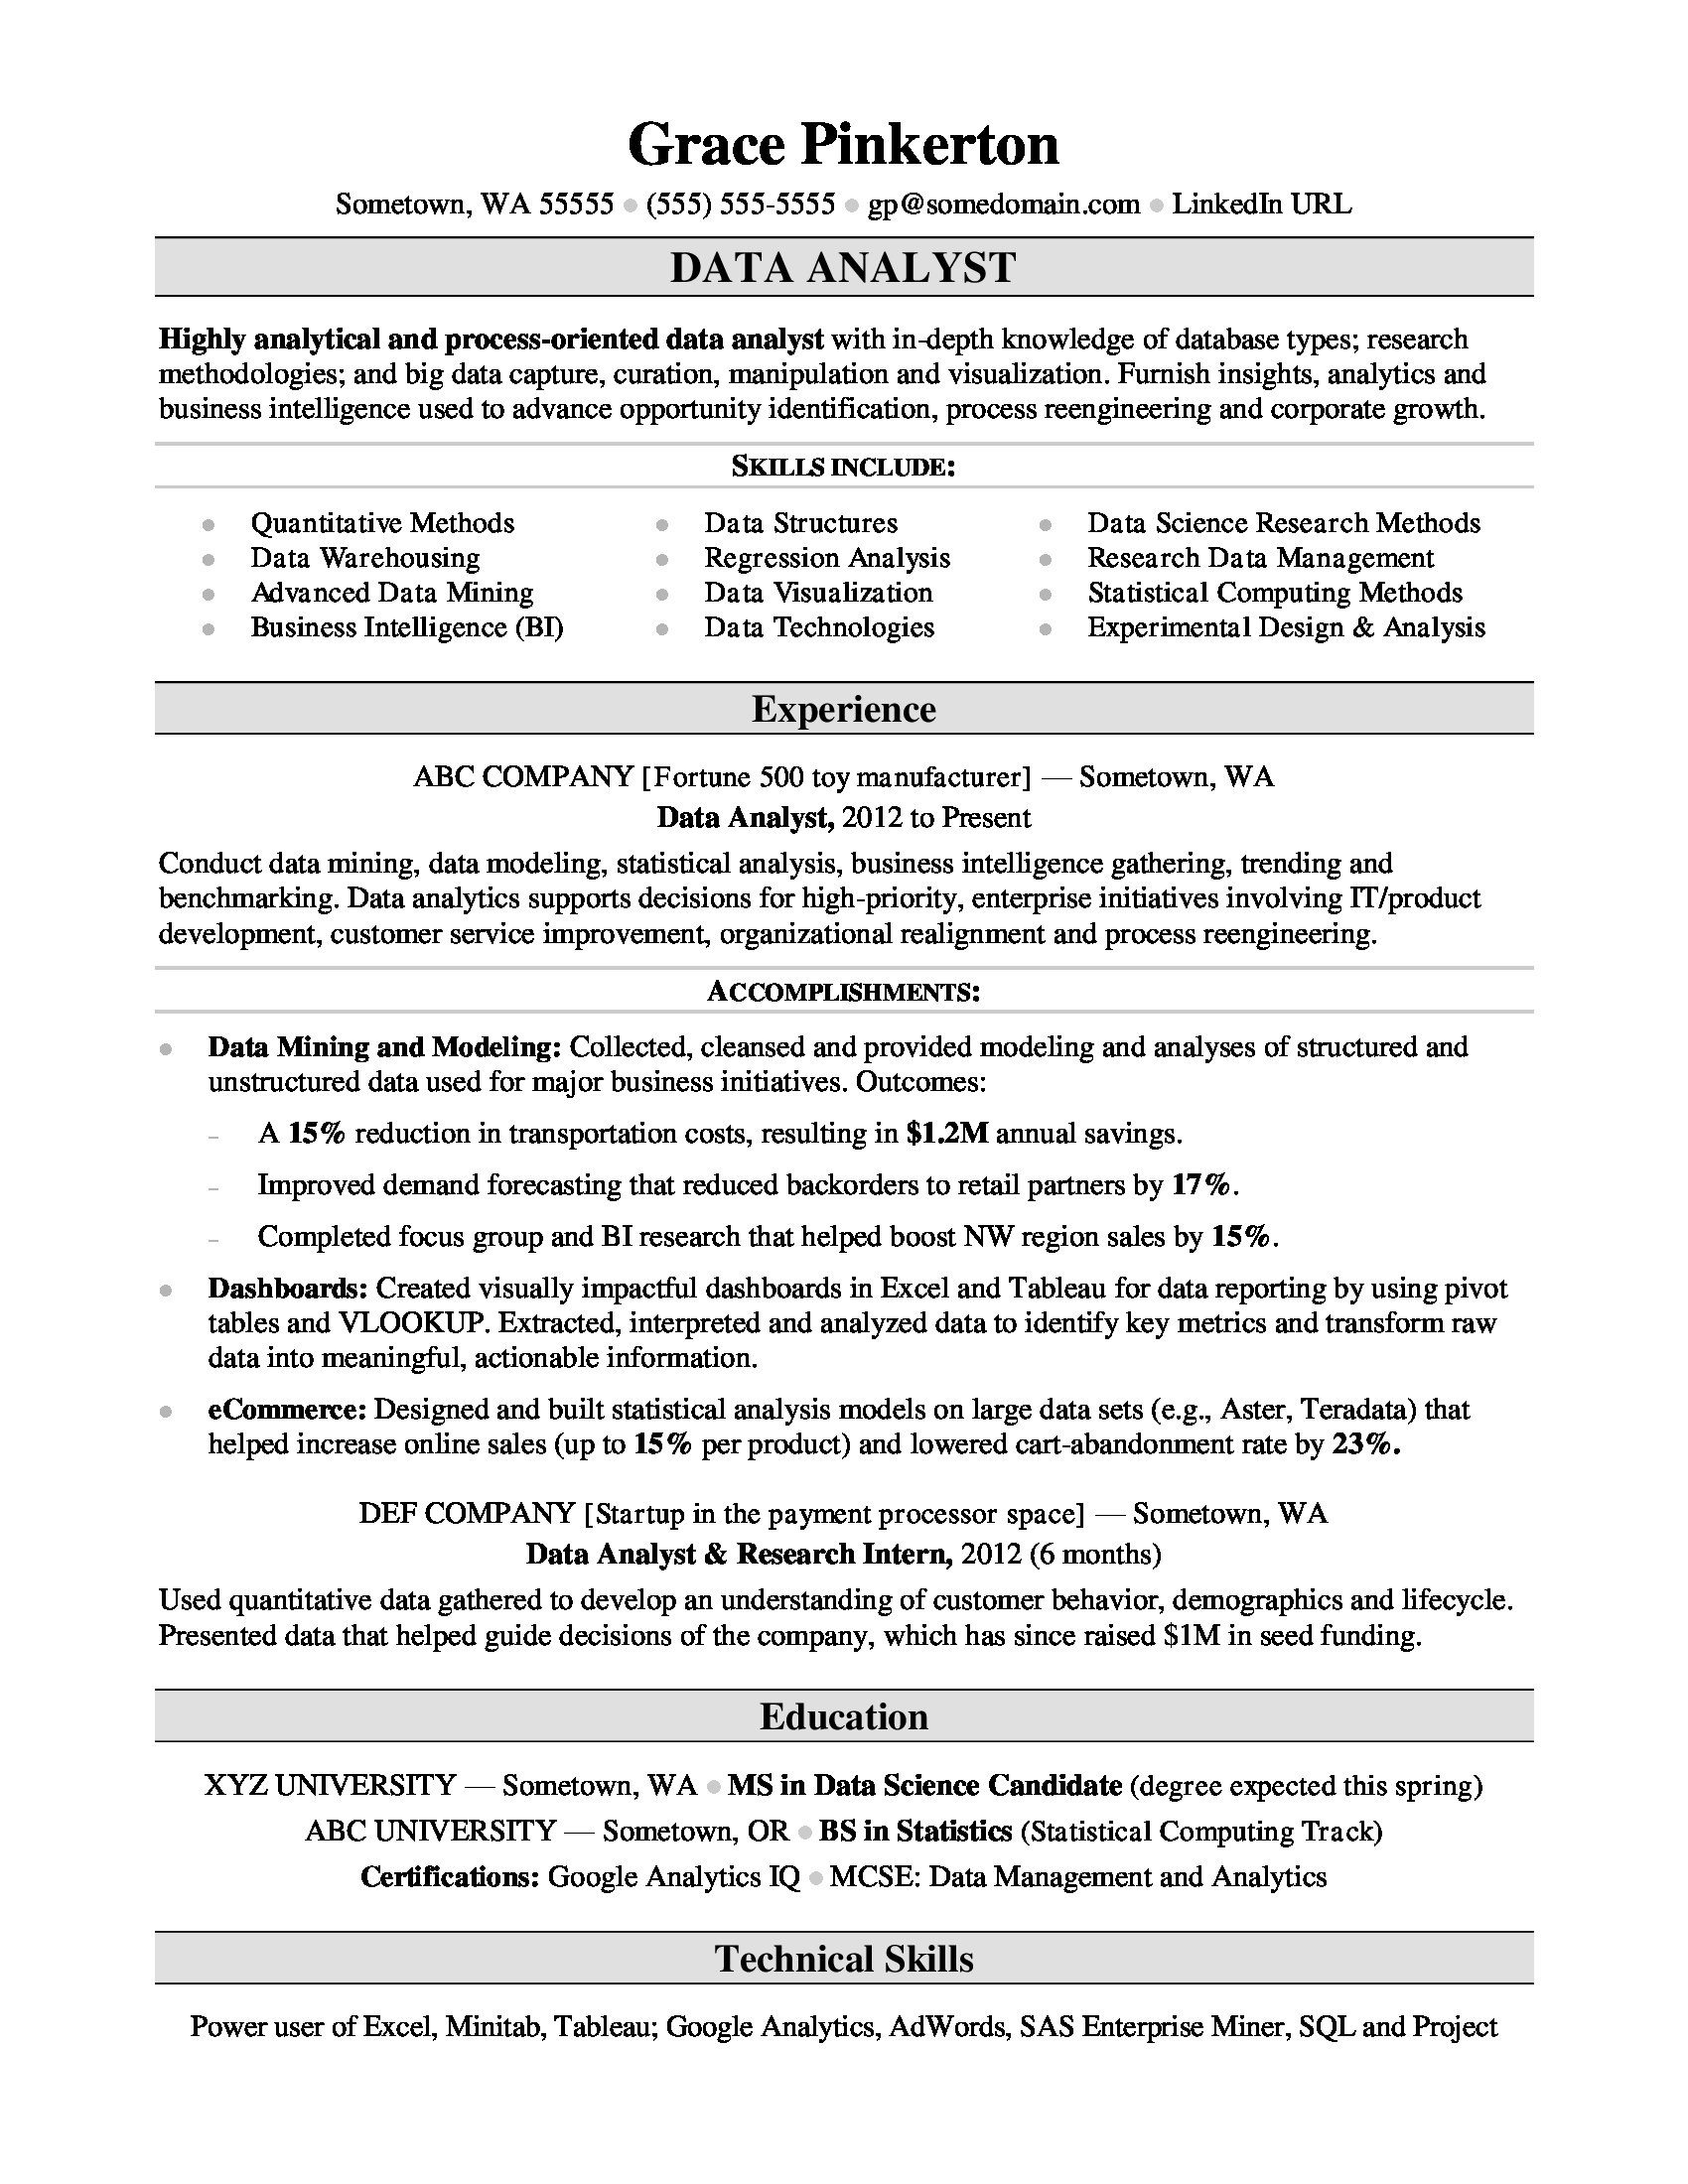 Data Analyst Resume Sample | Monster In Analytical Report Template